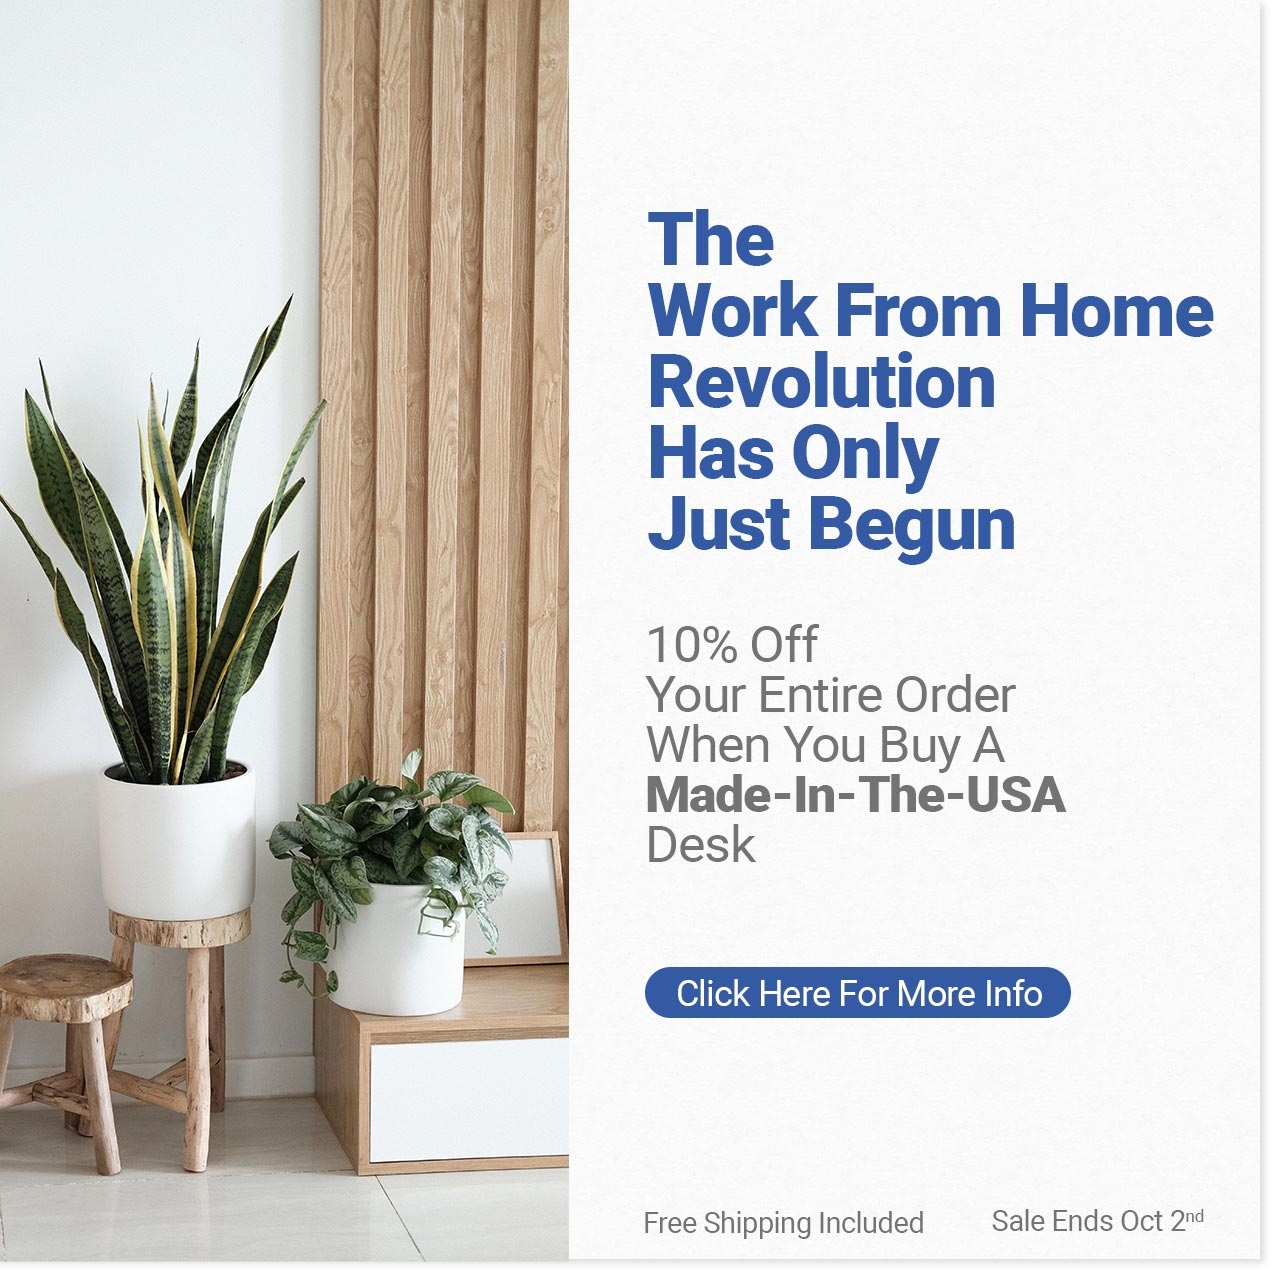 The Everything From Home Sale